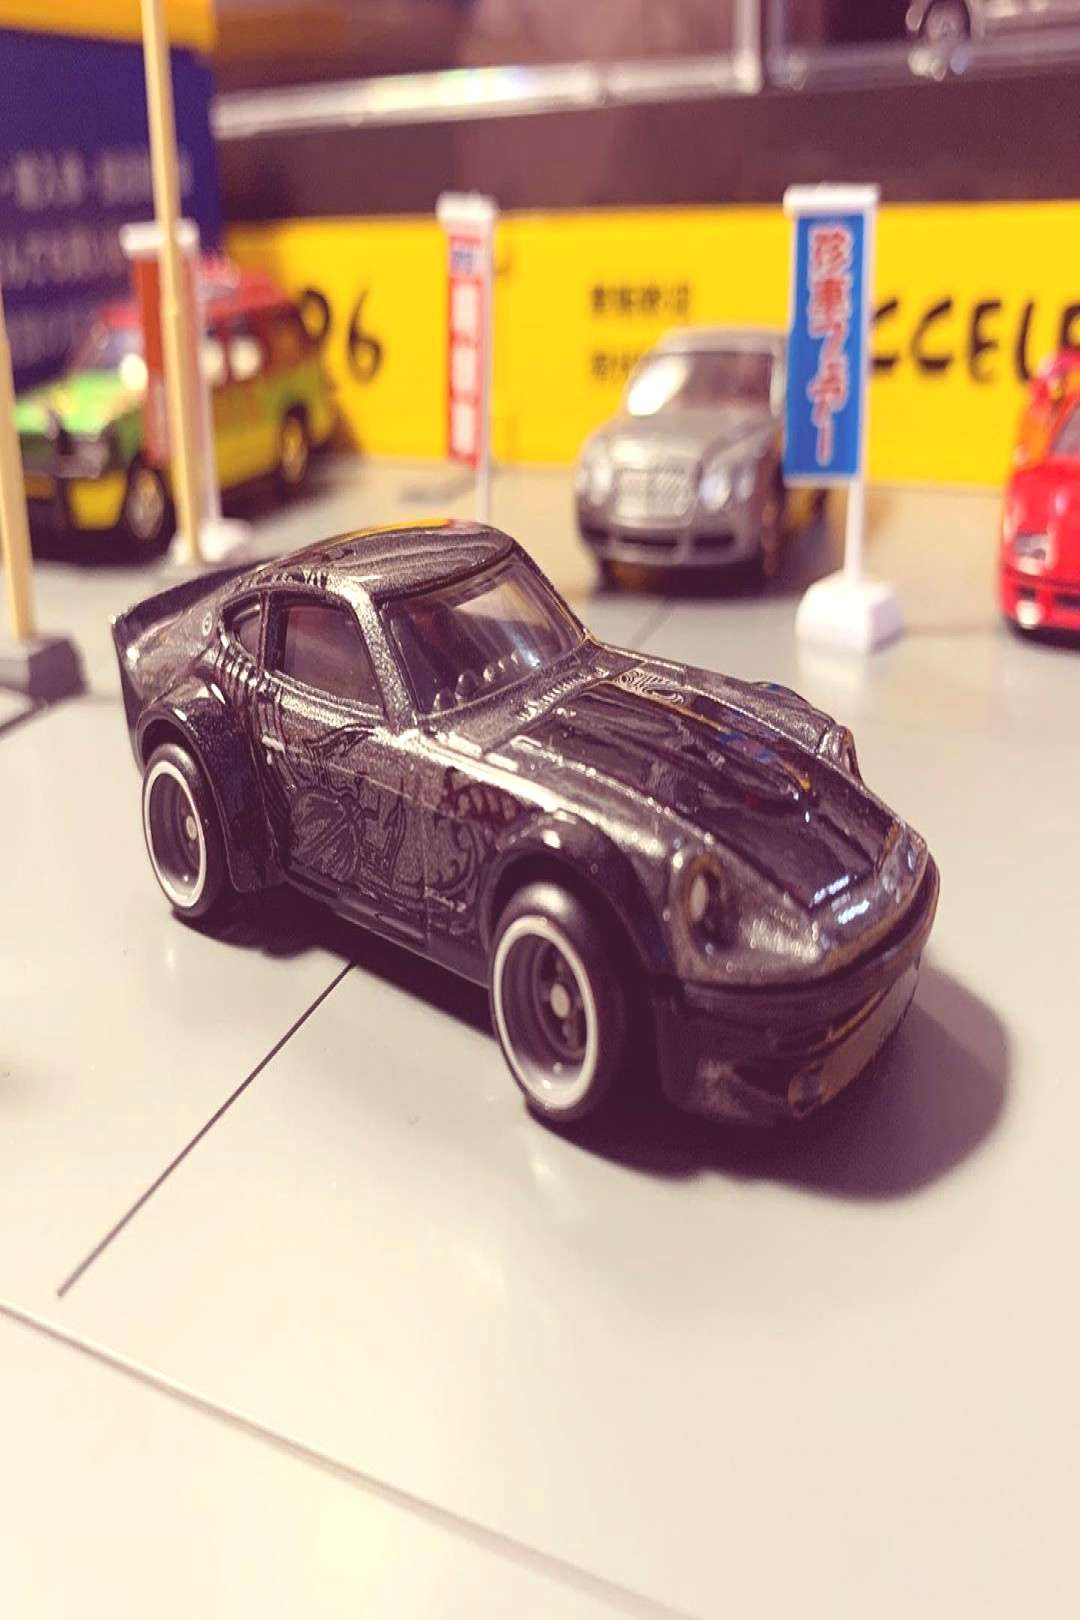 #hotwheels #fairlady #criminal #furious #diorama #nissan #fast #car #z #s Fast & Furious Nissan Fairlady Z #hotwheels #diorama #criminal #sYou can find Fast and furious and more on our website.Fast & Furious Nissan Fairlady Z #hotwheel...